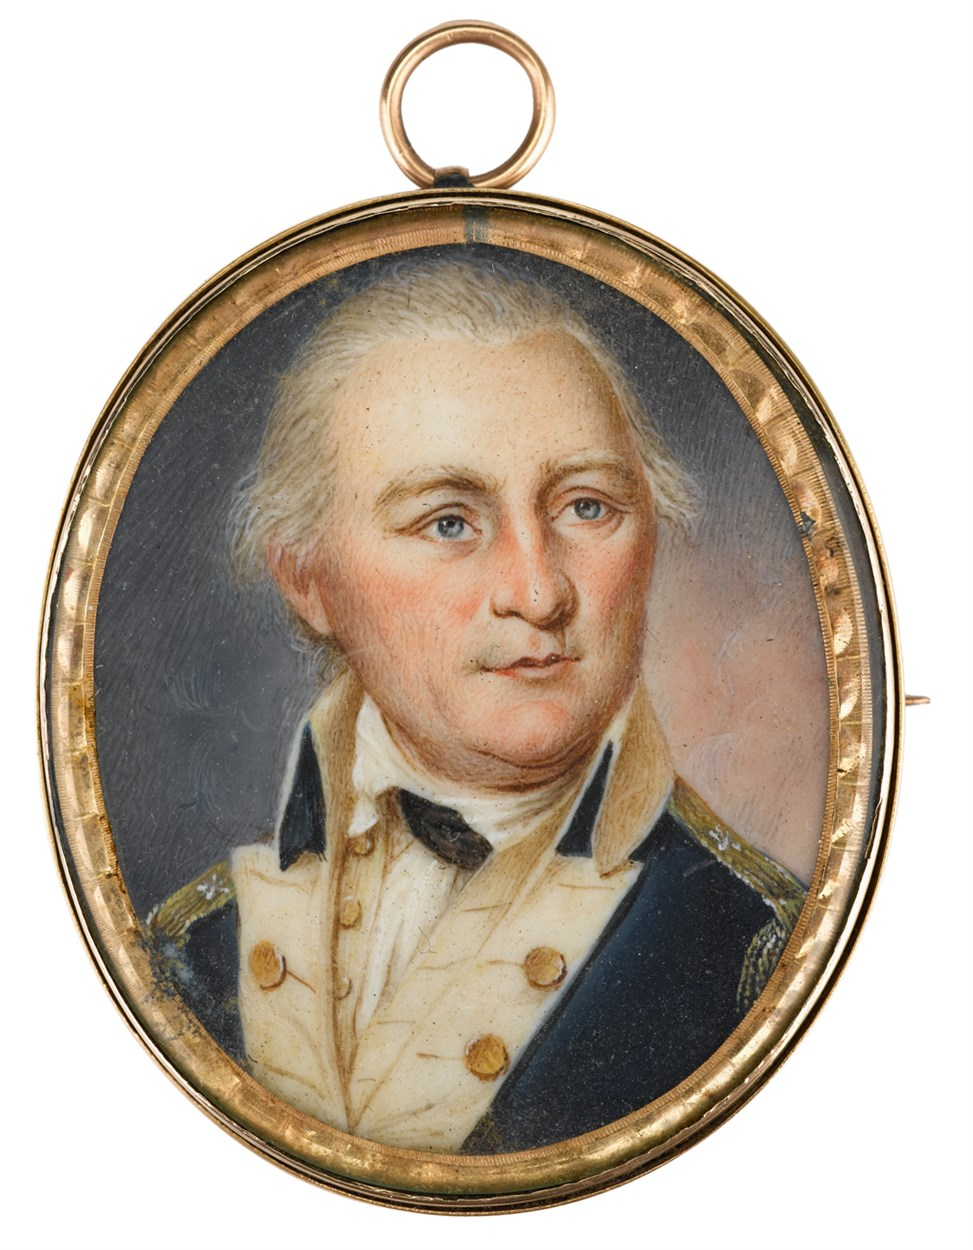 Lot 560 - After Charles Willson Peale (1741-1827)